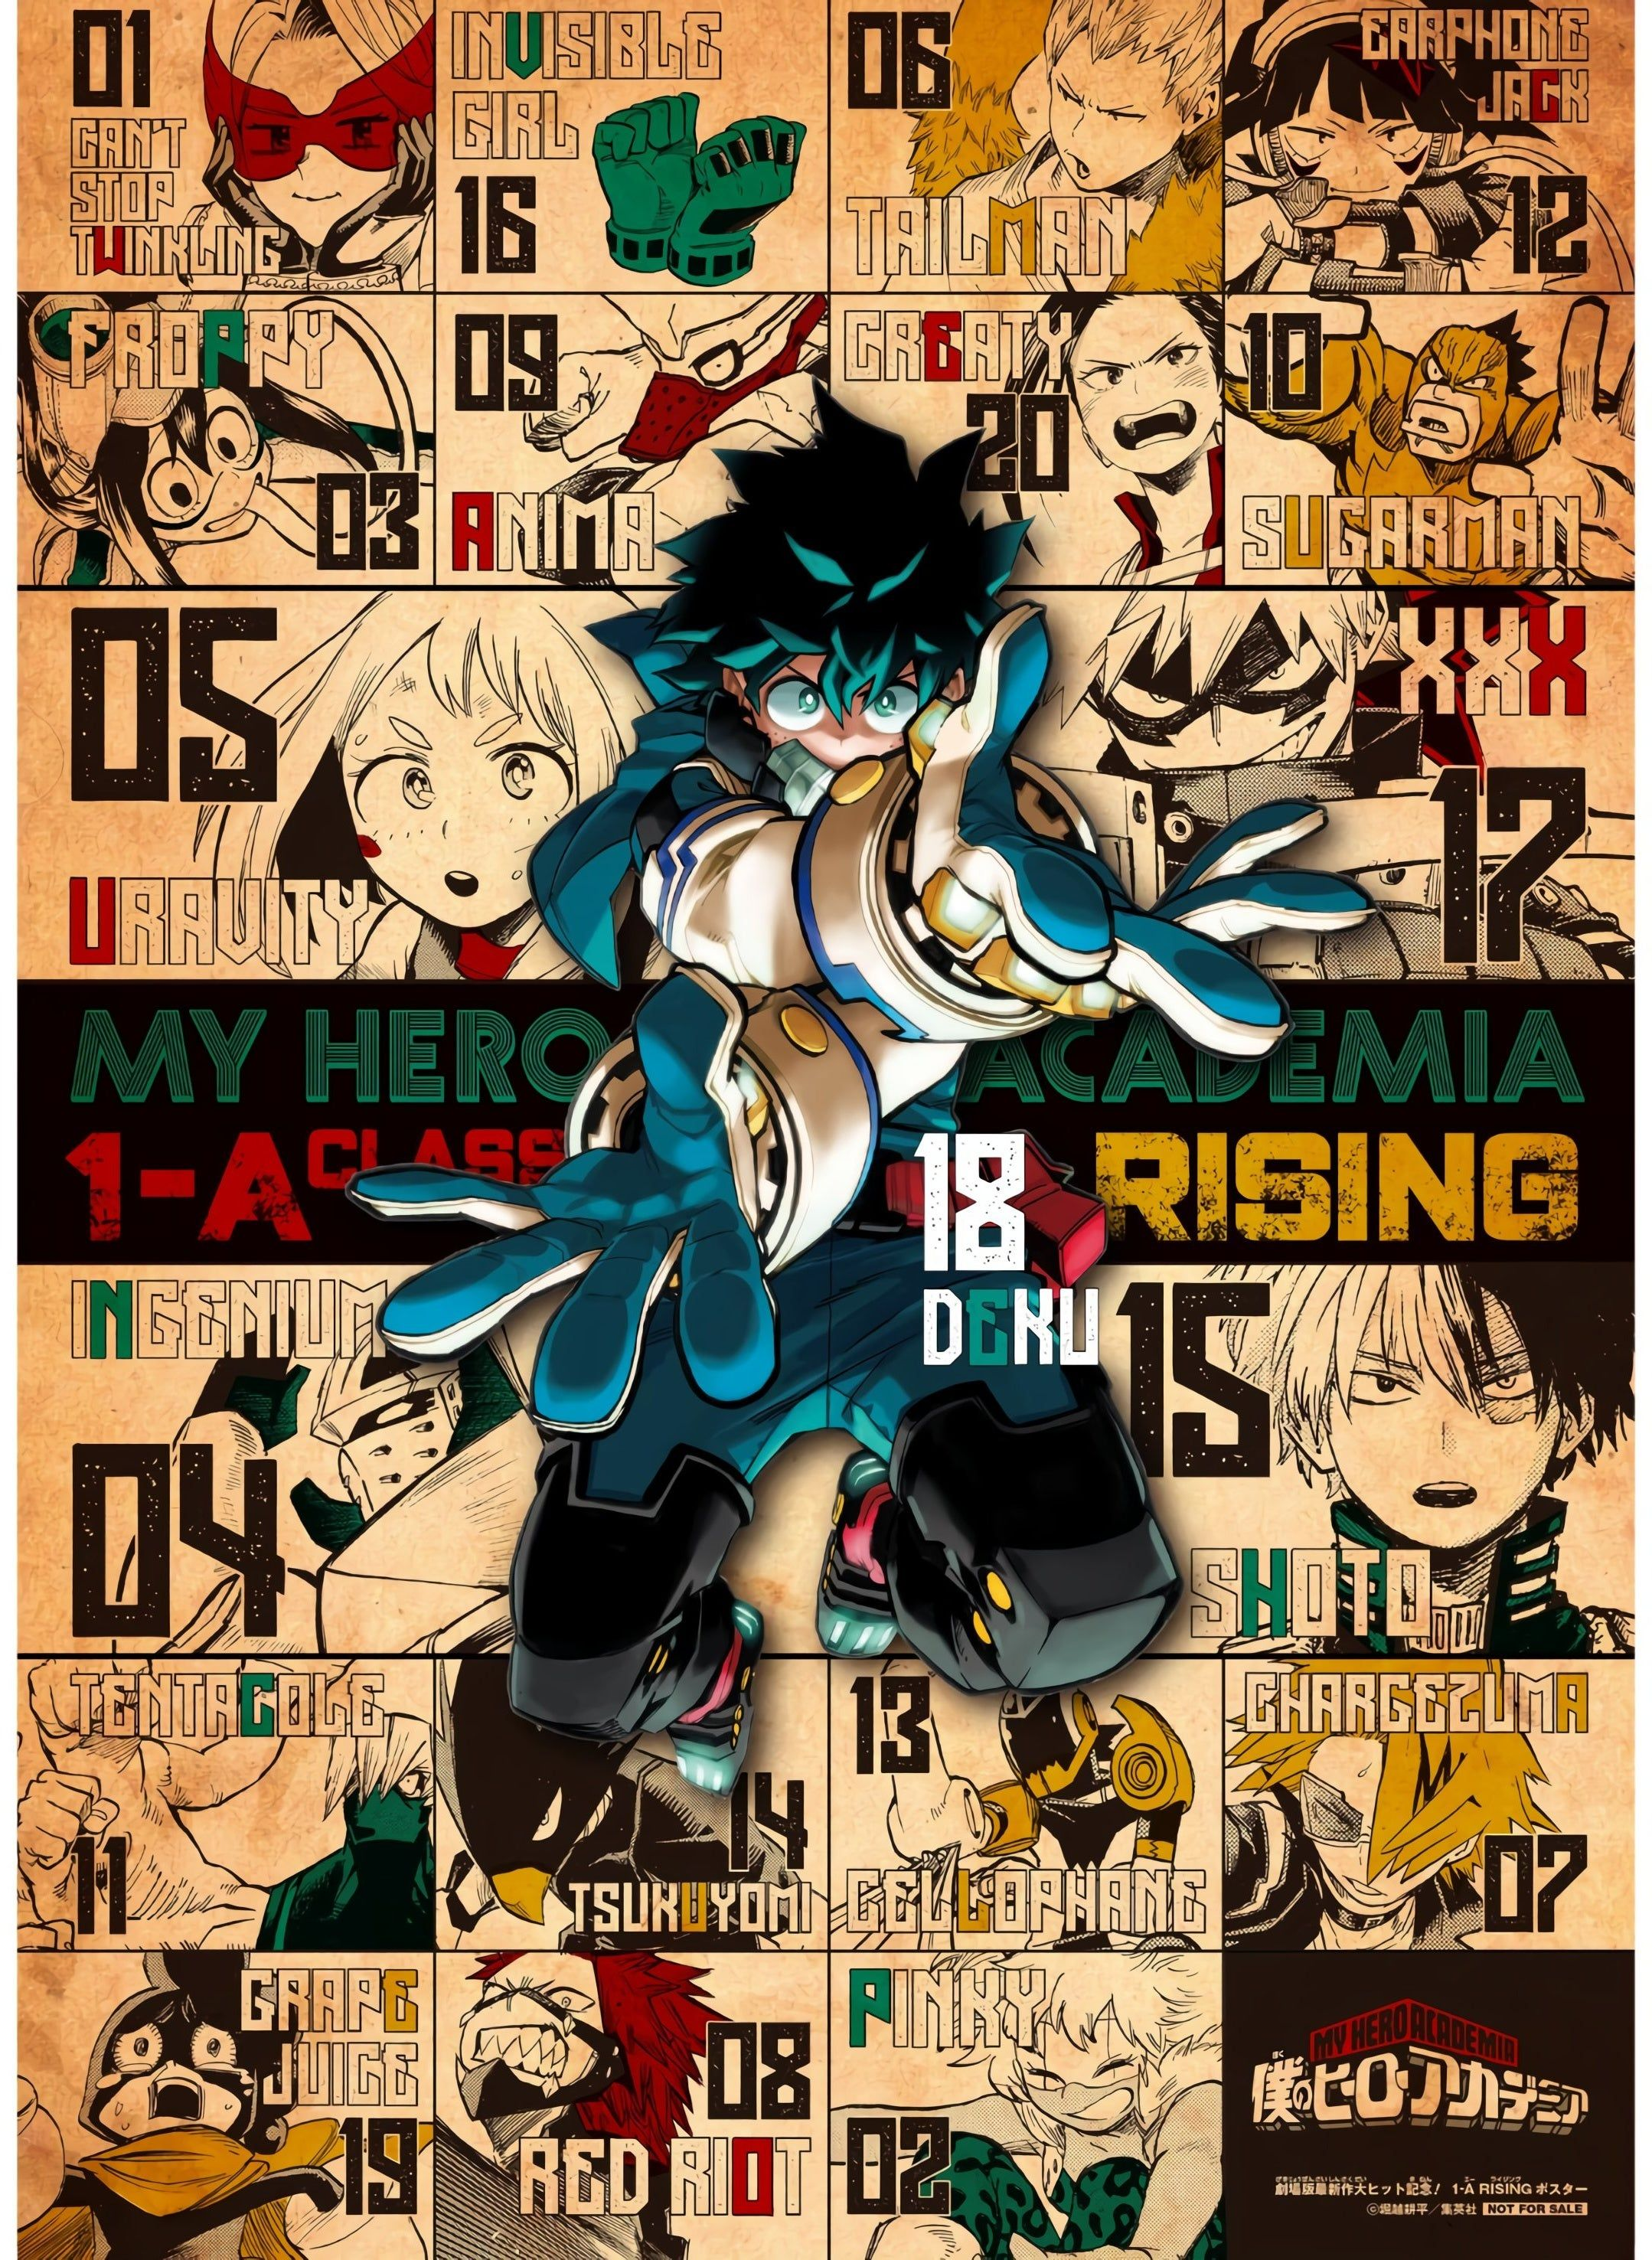 Pin By Karisa On My Hero Academia In 2020 With Images My Hero